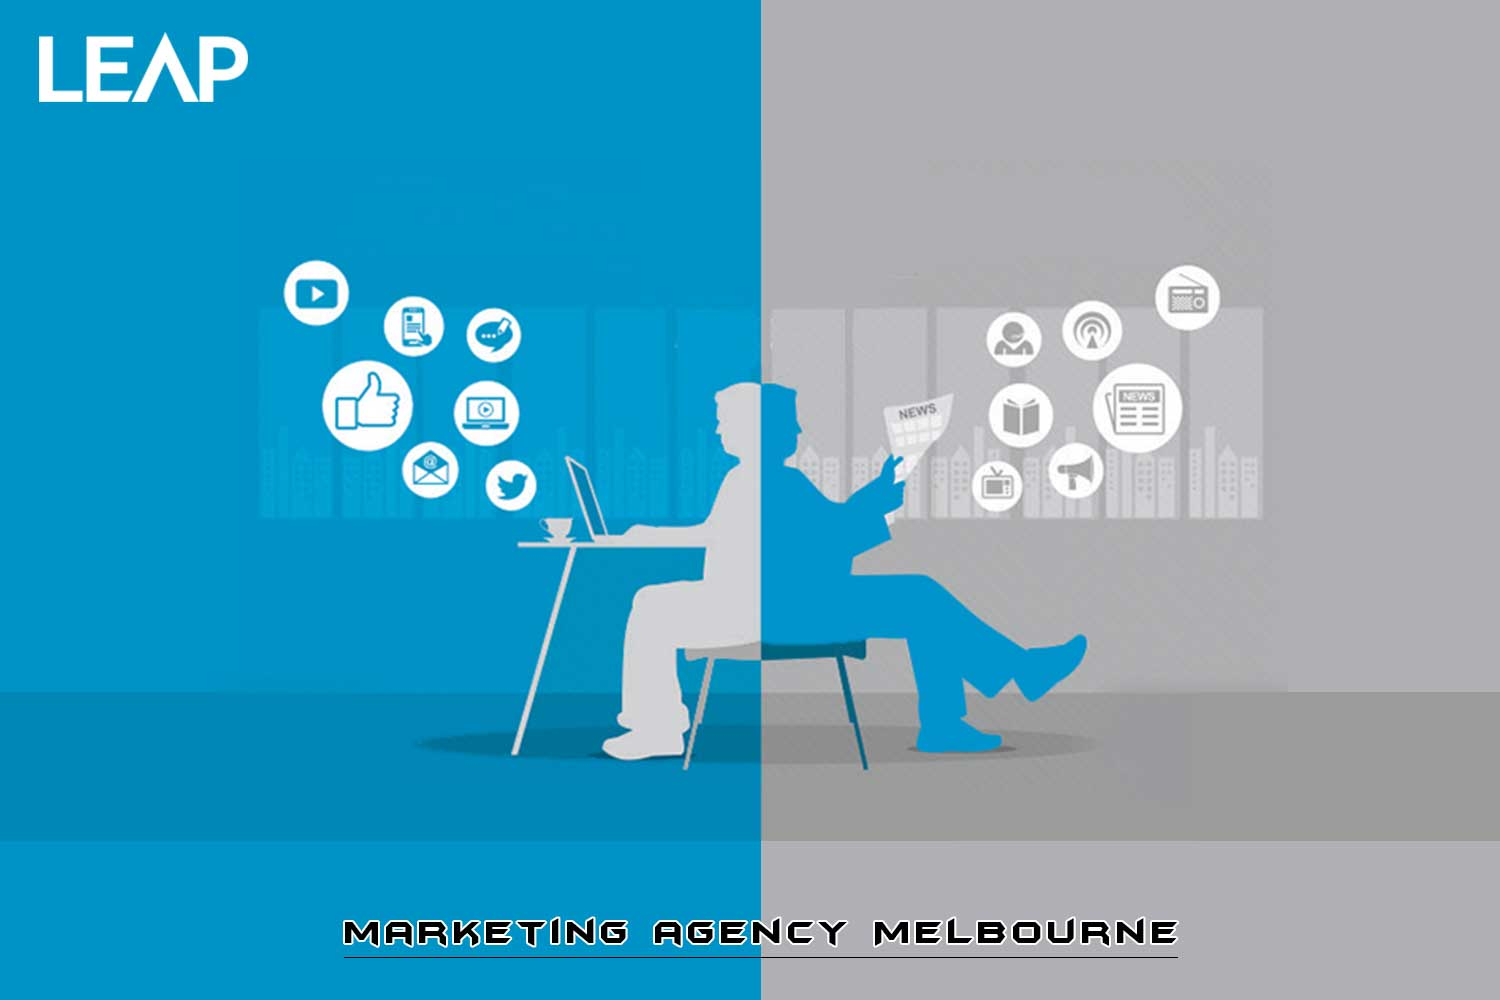 Advertising and Marketing Agency Melbourne – LEAP